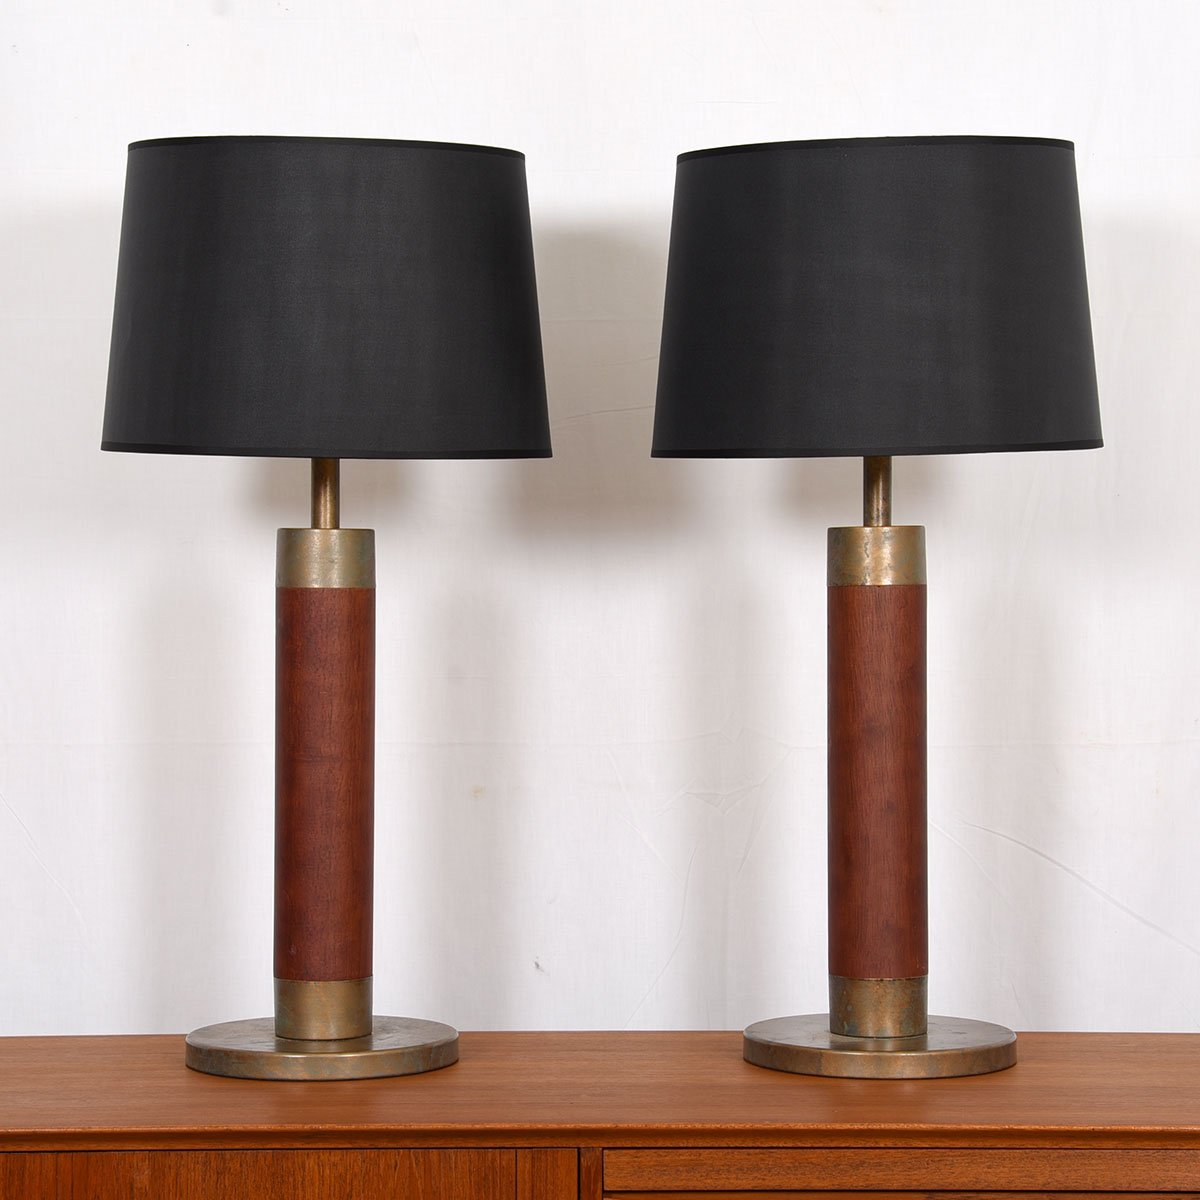 Pair of Solid Wood and Patinated Bronze Column Table Lamps